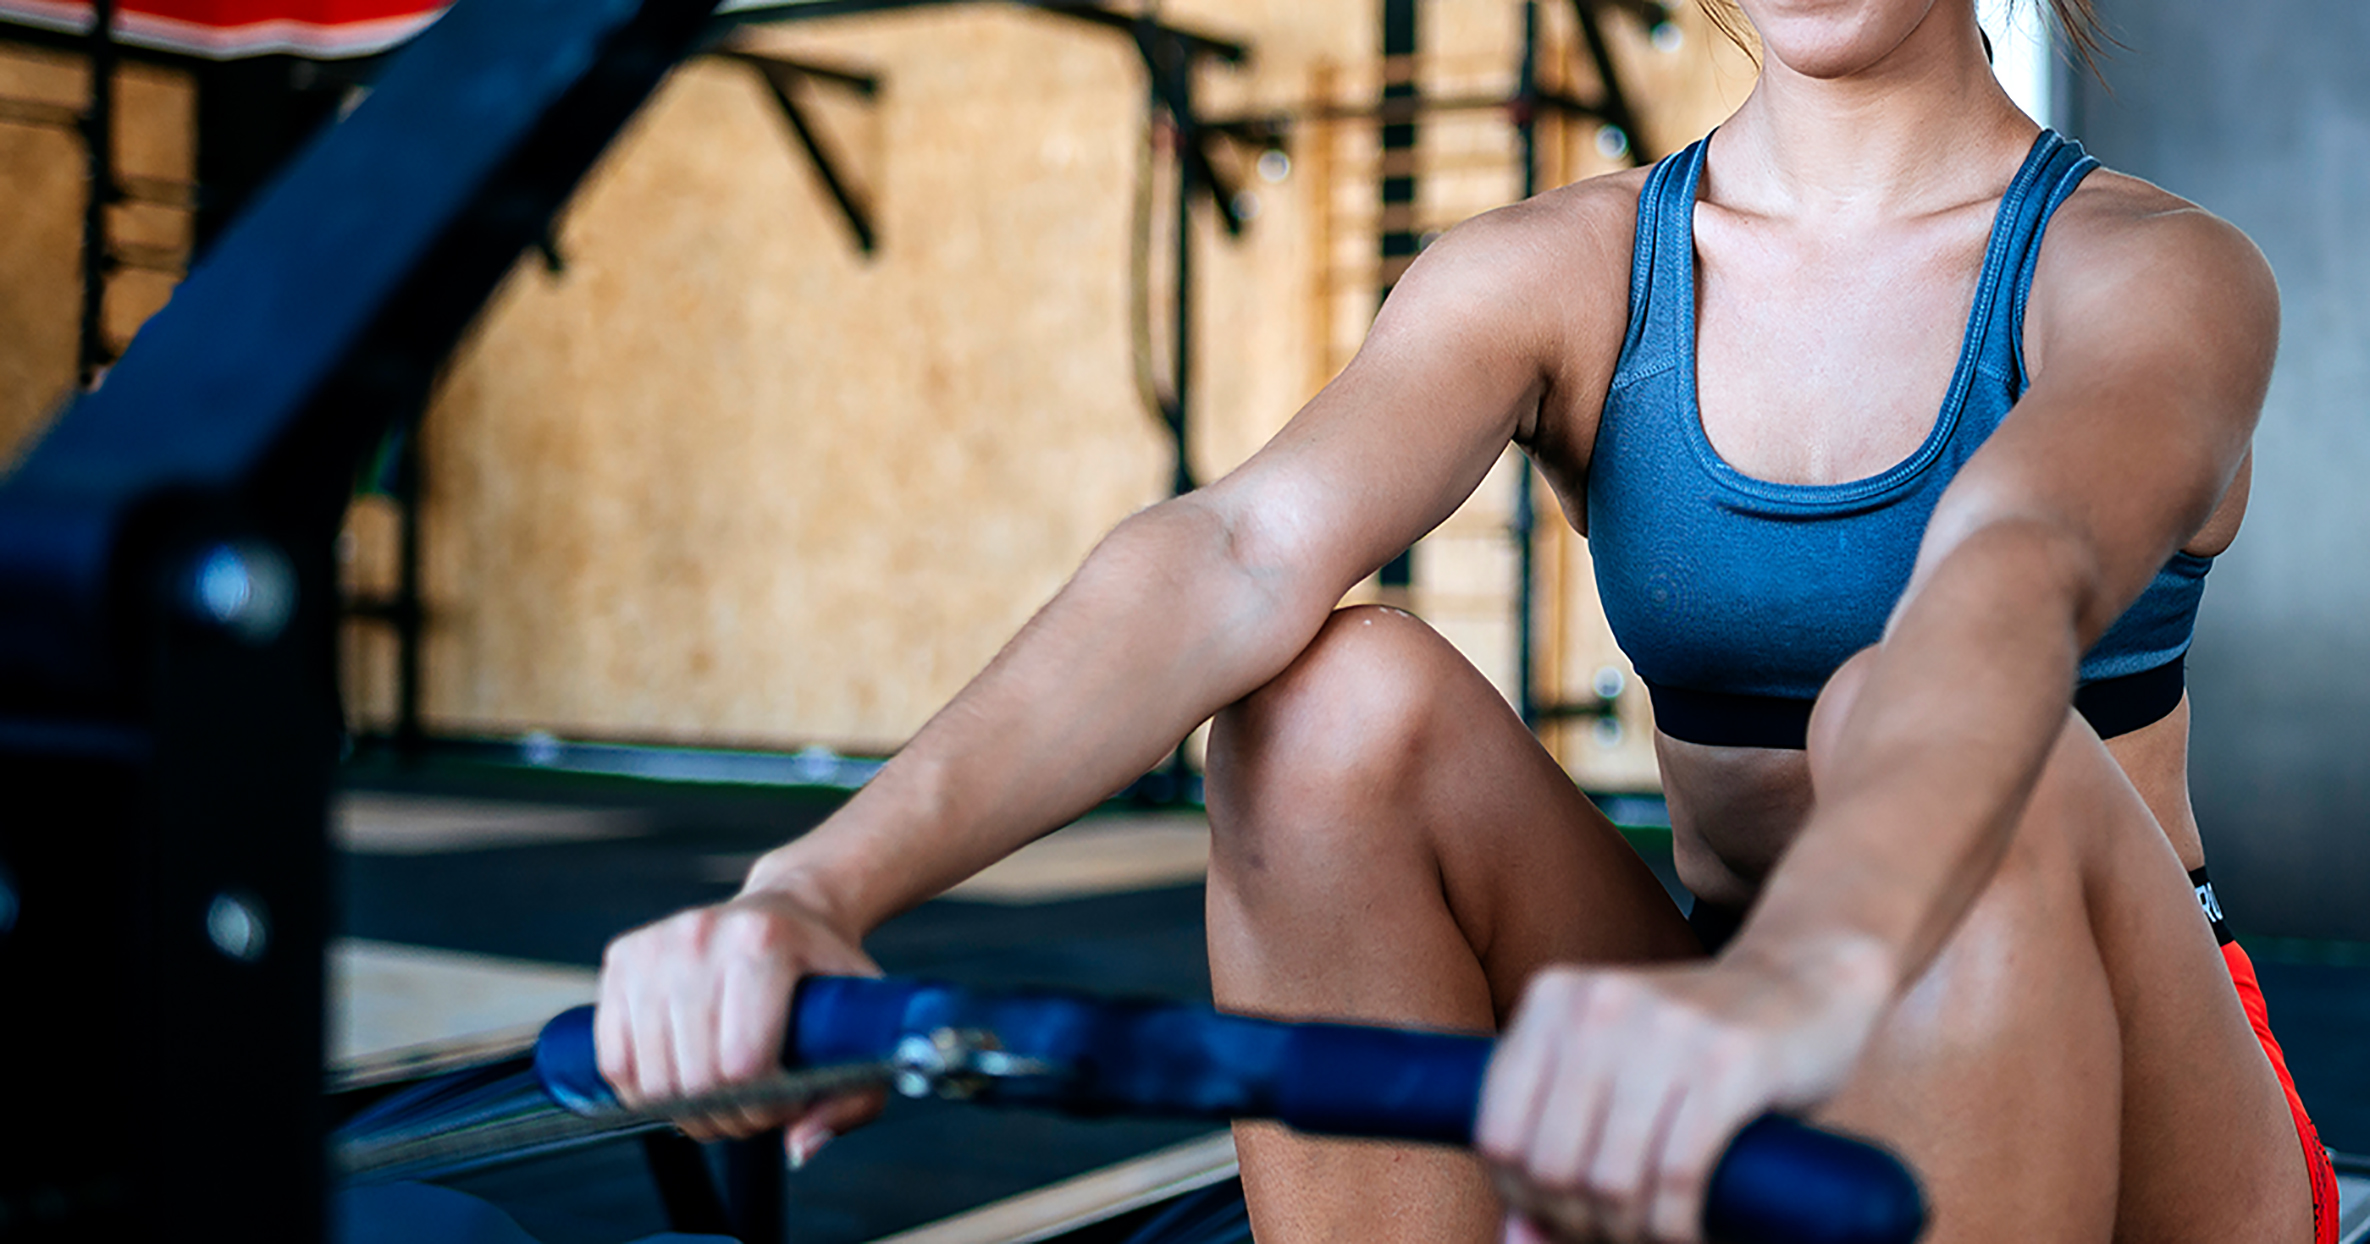 20-Minute Total Body Rowing Workout with Beginner Rowing